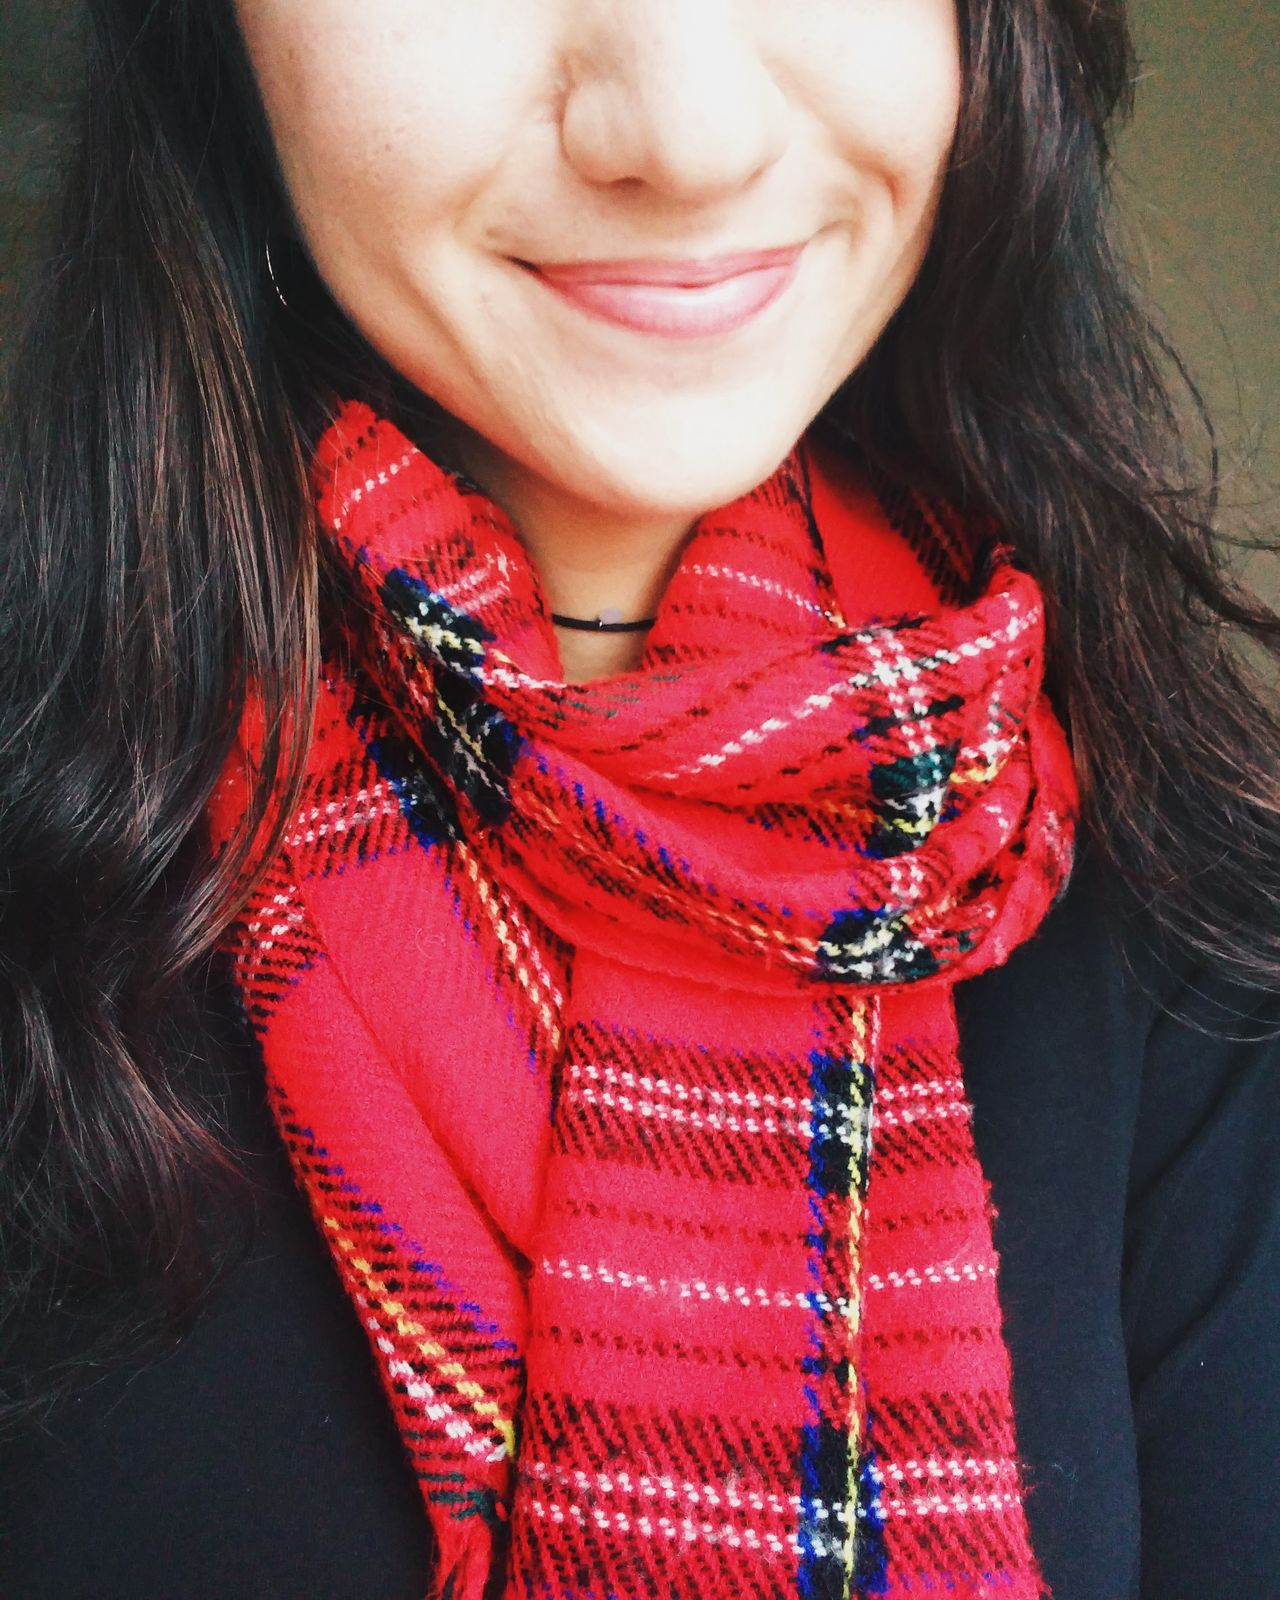 Red One Person Close-up One Woman Only Adult Smiling Women Indoors  Young Adult Beautiful Woman Lips Lipstick Red Scarf Winter Winter Fashion Fashion Christmas Lieblingsteil